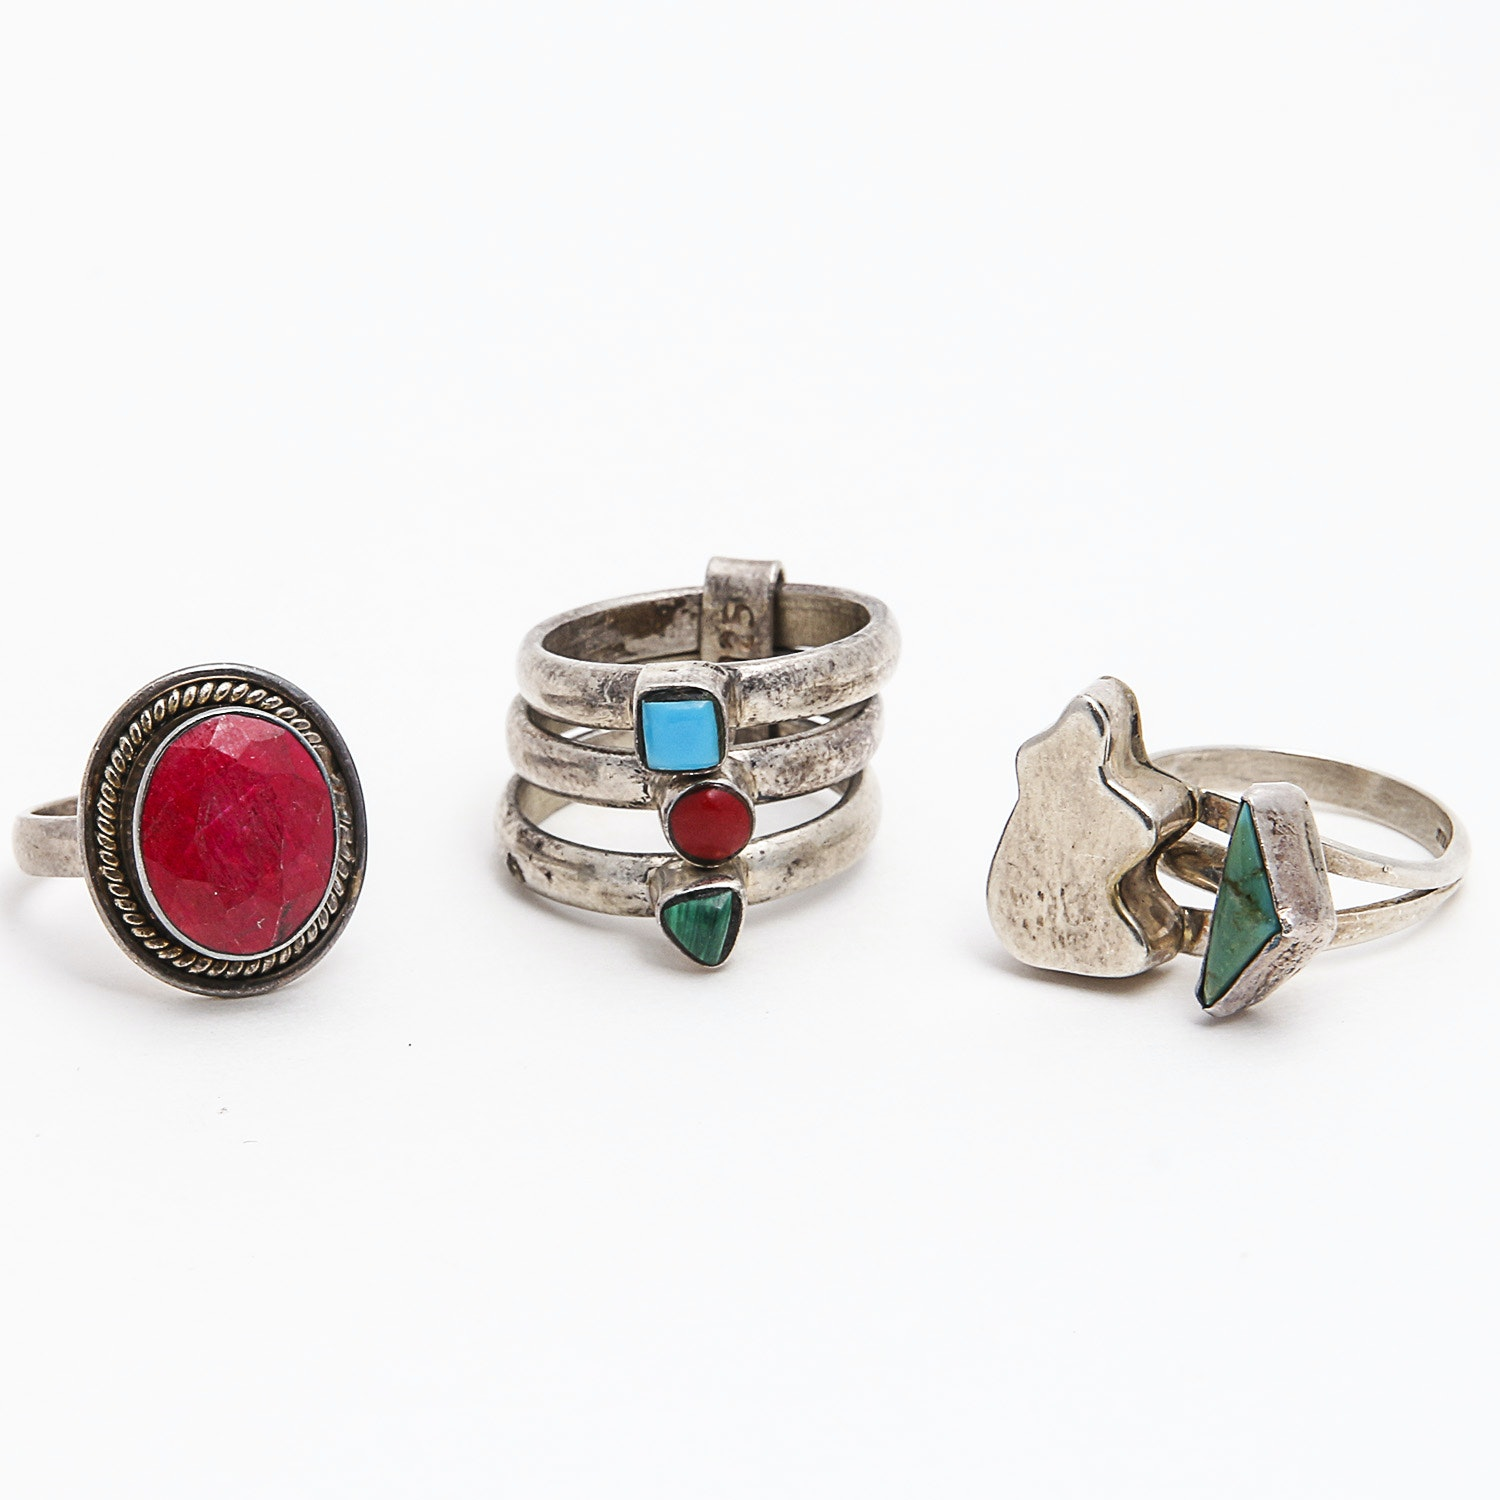 Three Sterling Rings Including Turquoise and Coral Accents